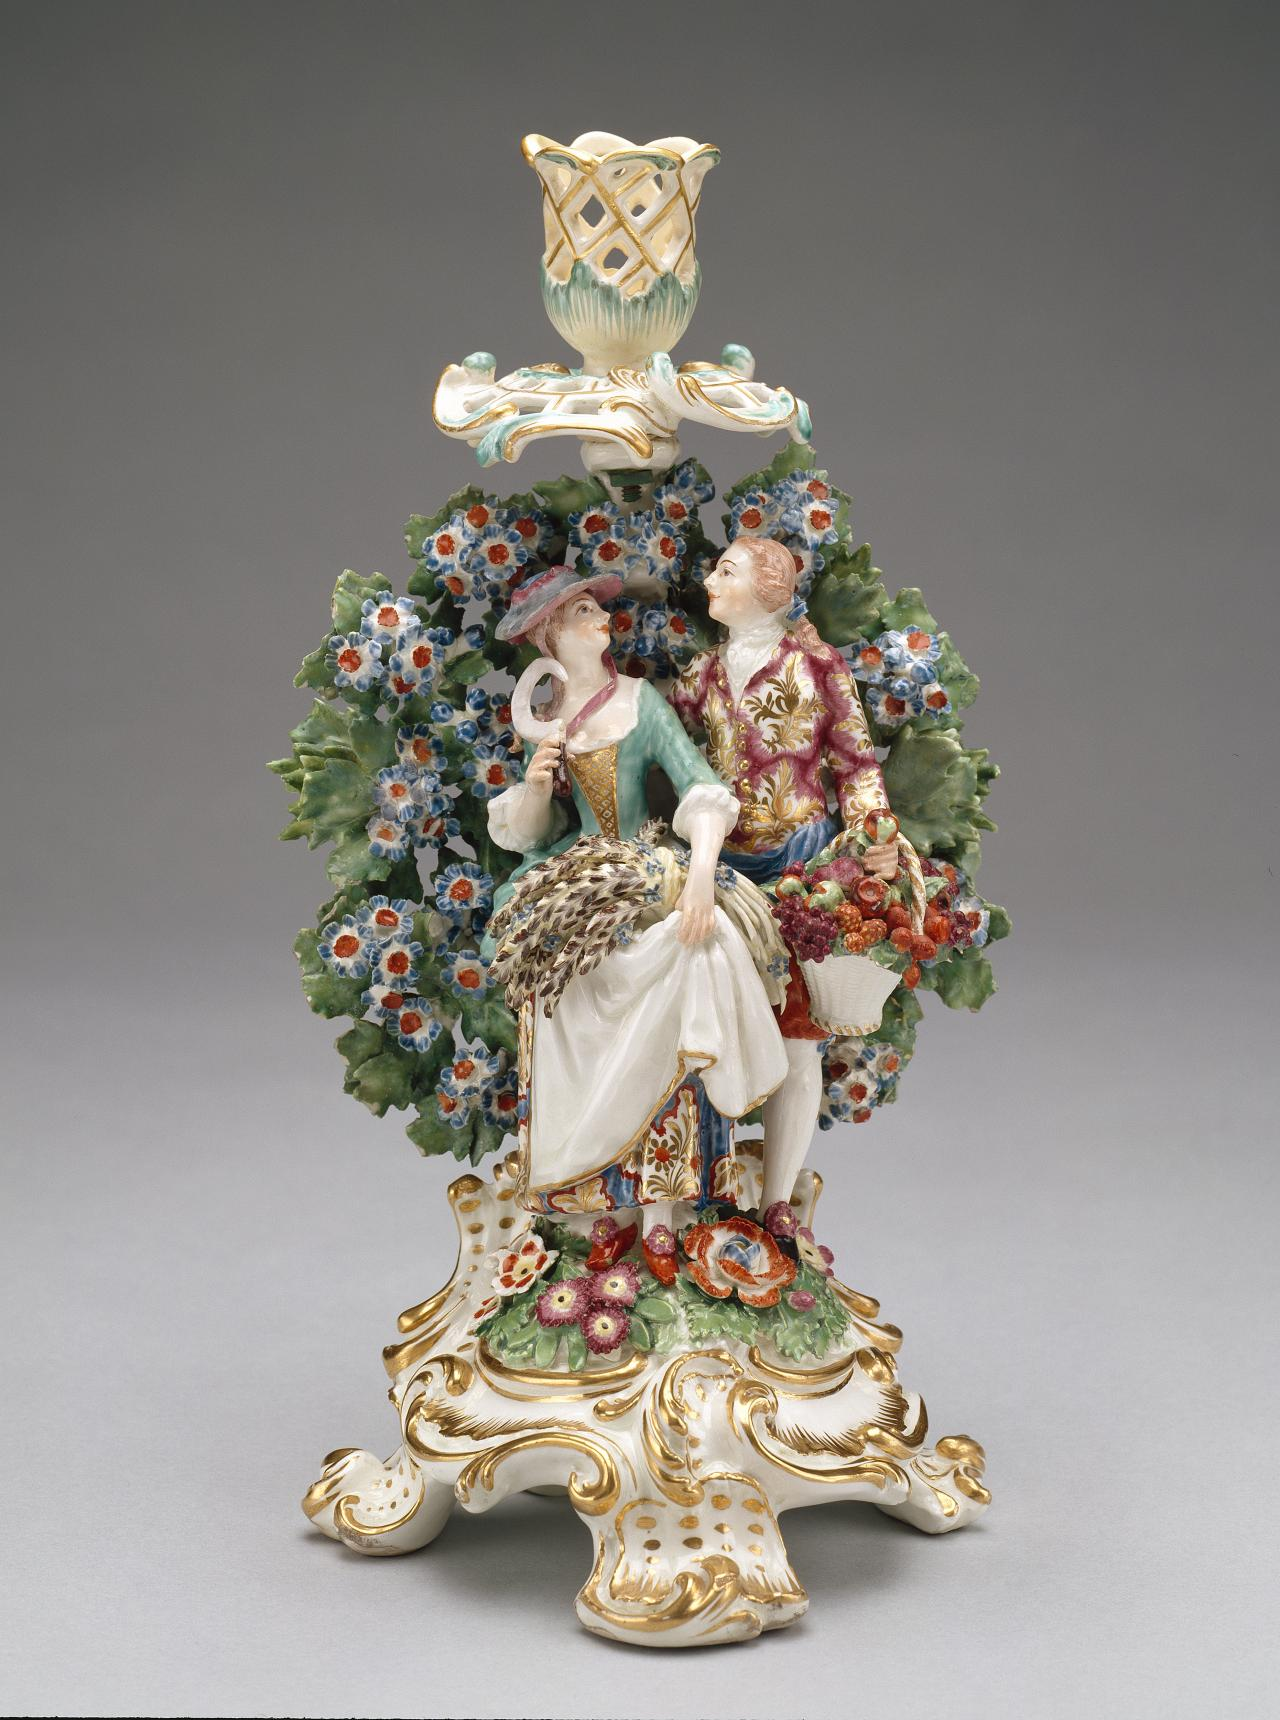 Summer and autumn, from The four seasons, candlestick